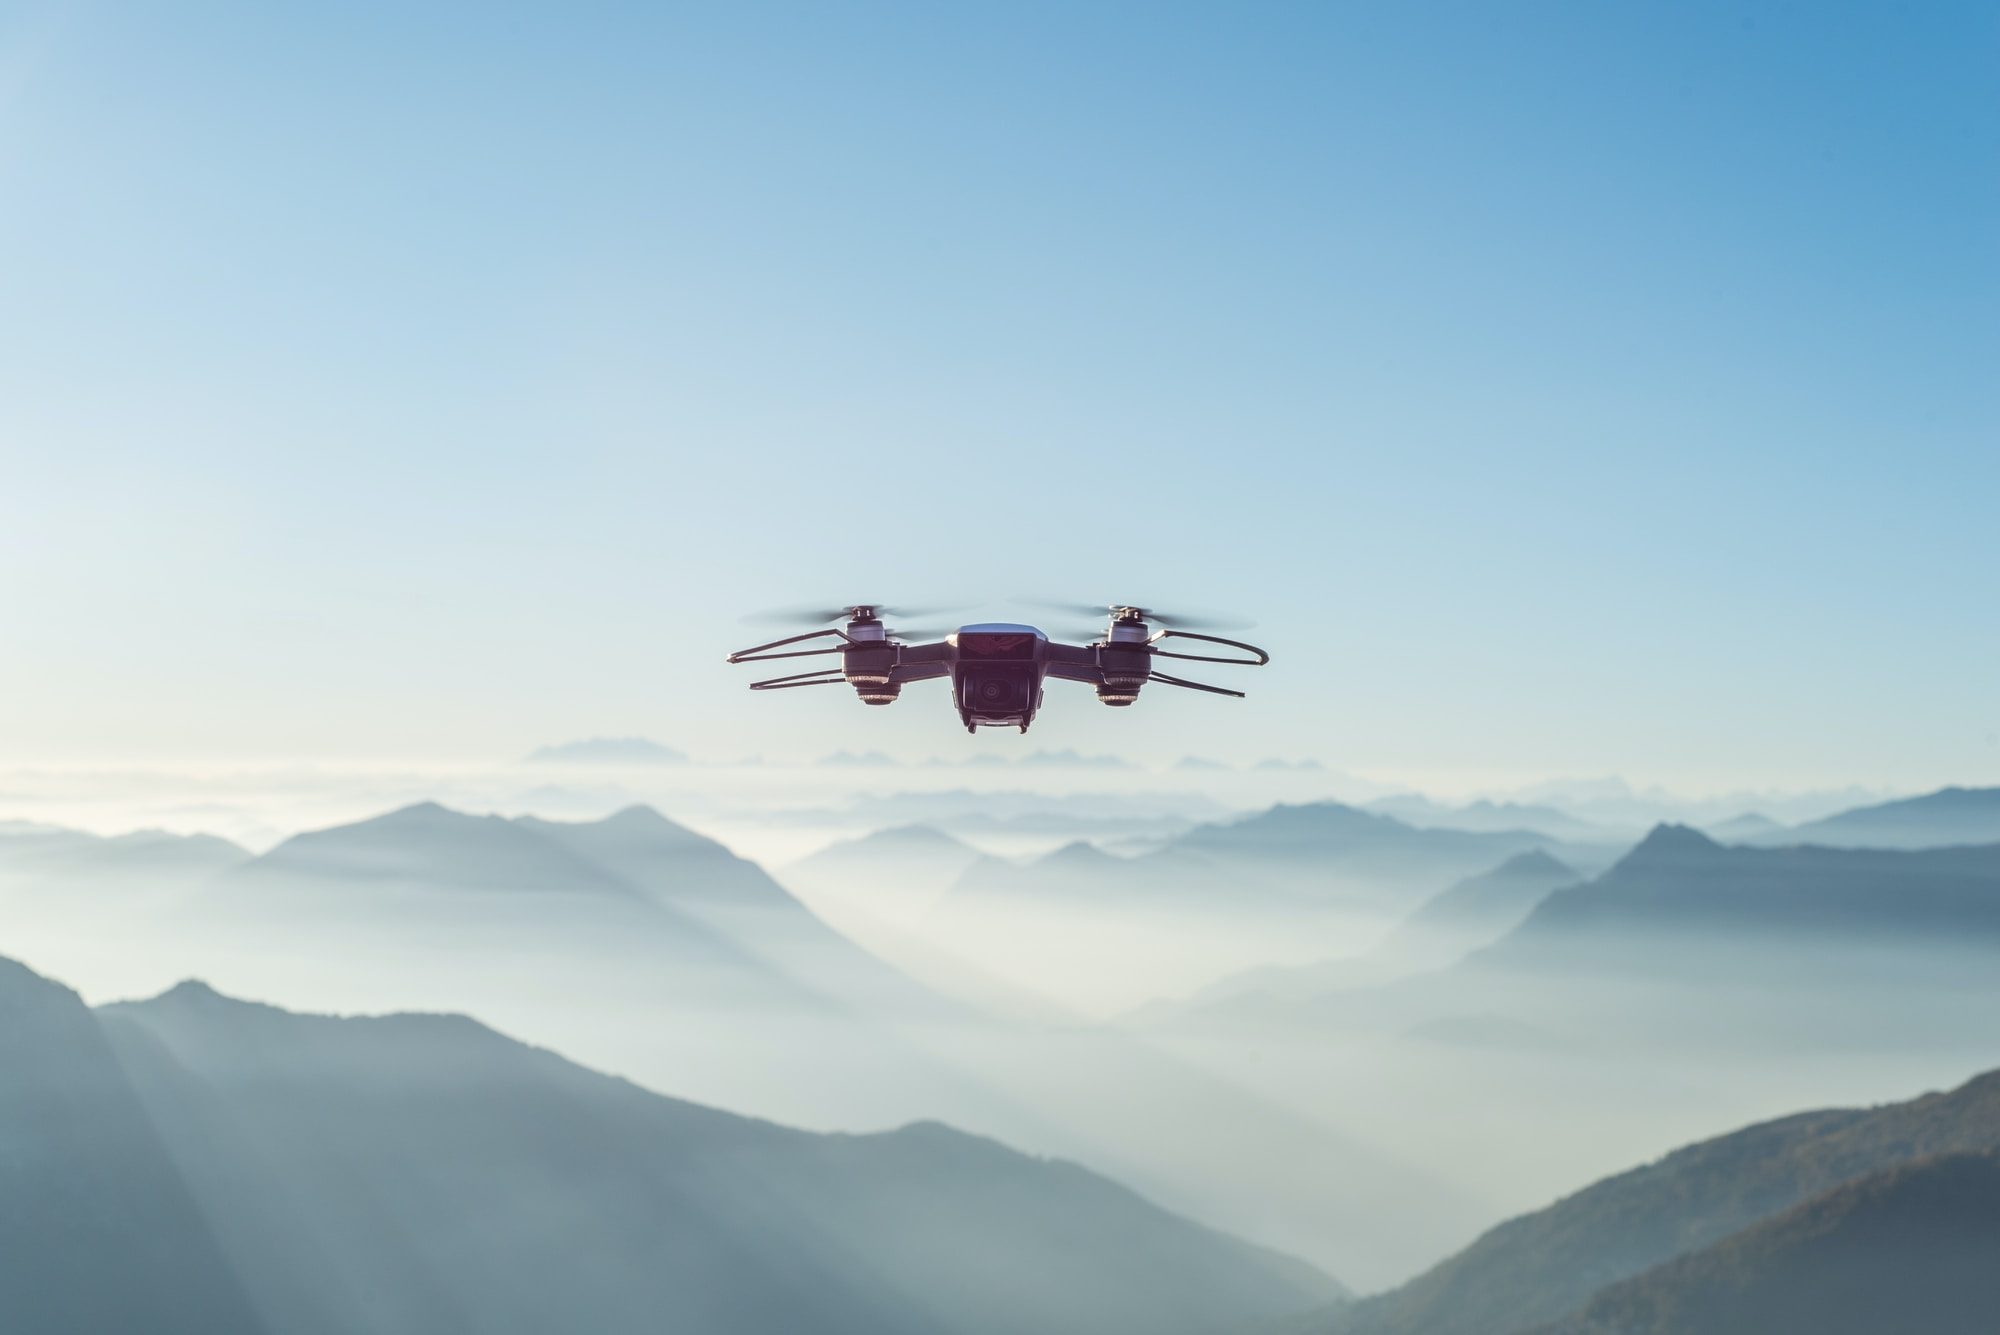 IoT drone used in the sky above mountains